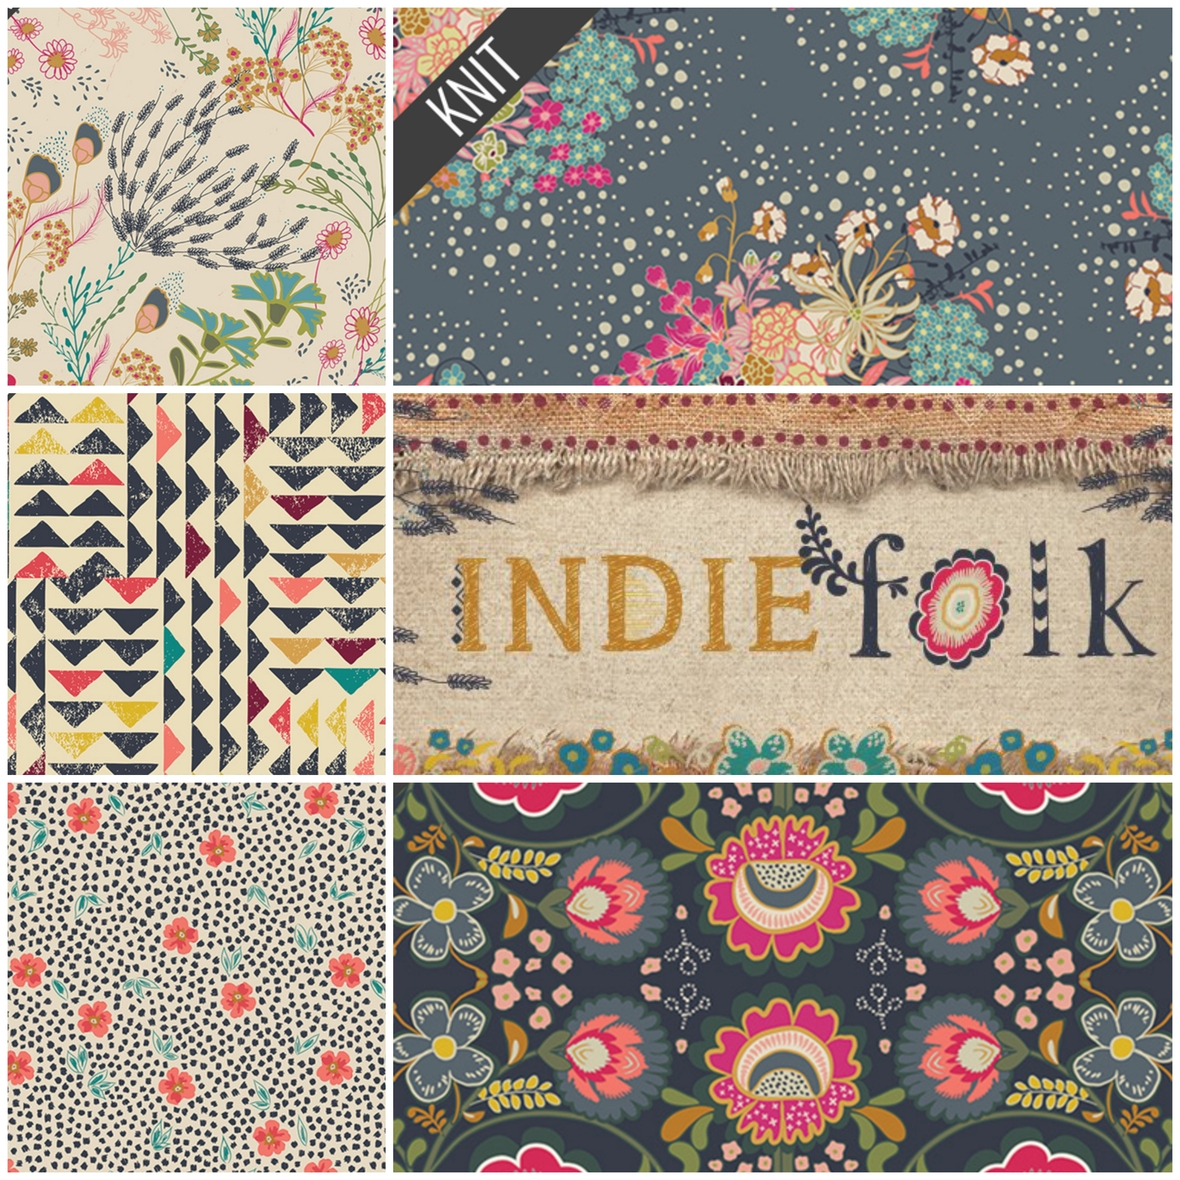 Indie Folk Knit Art Gallery